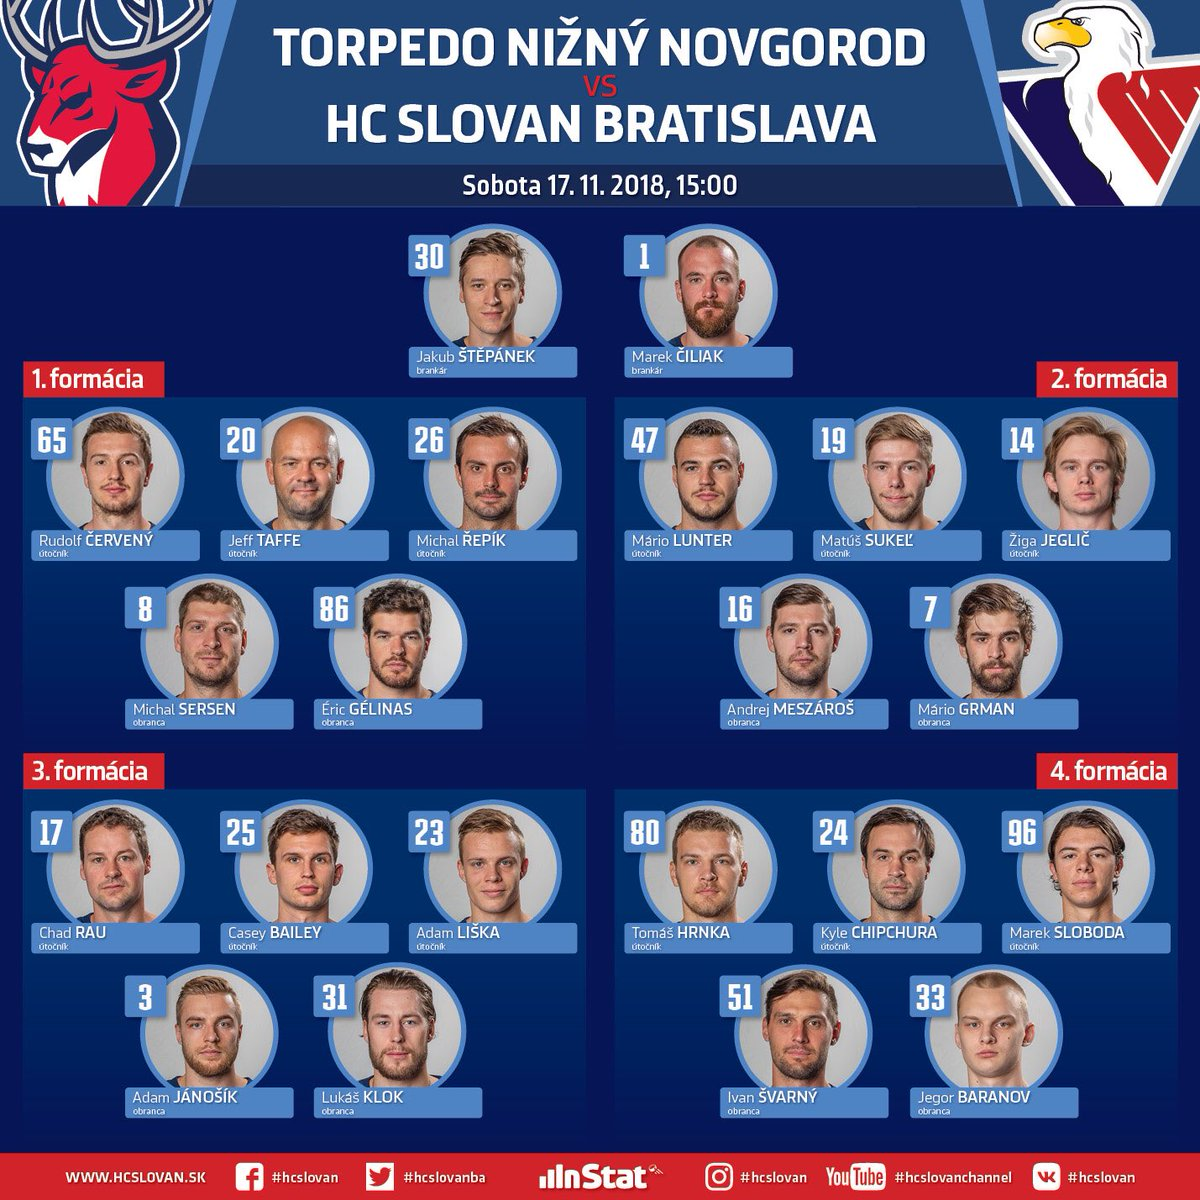 Winning line up of #hcslovan from Nizhnekamsk remains intact for today's @khl game at @torpedonn. #vernislovanu https://t.co/dKxk2dyUTD